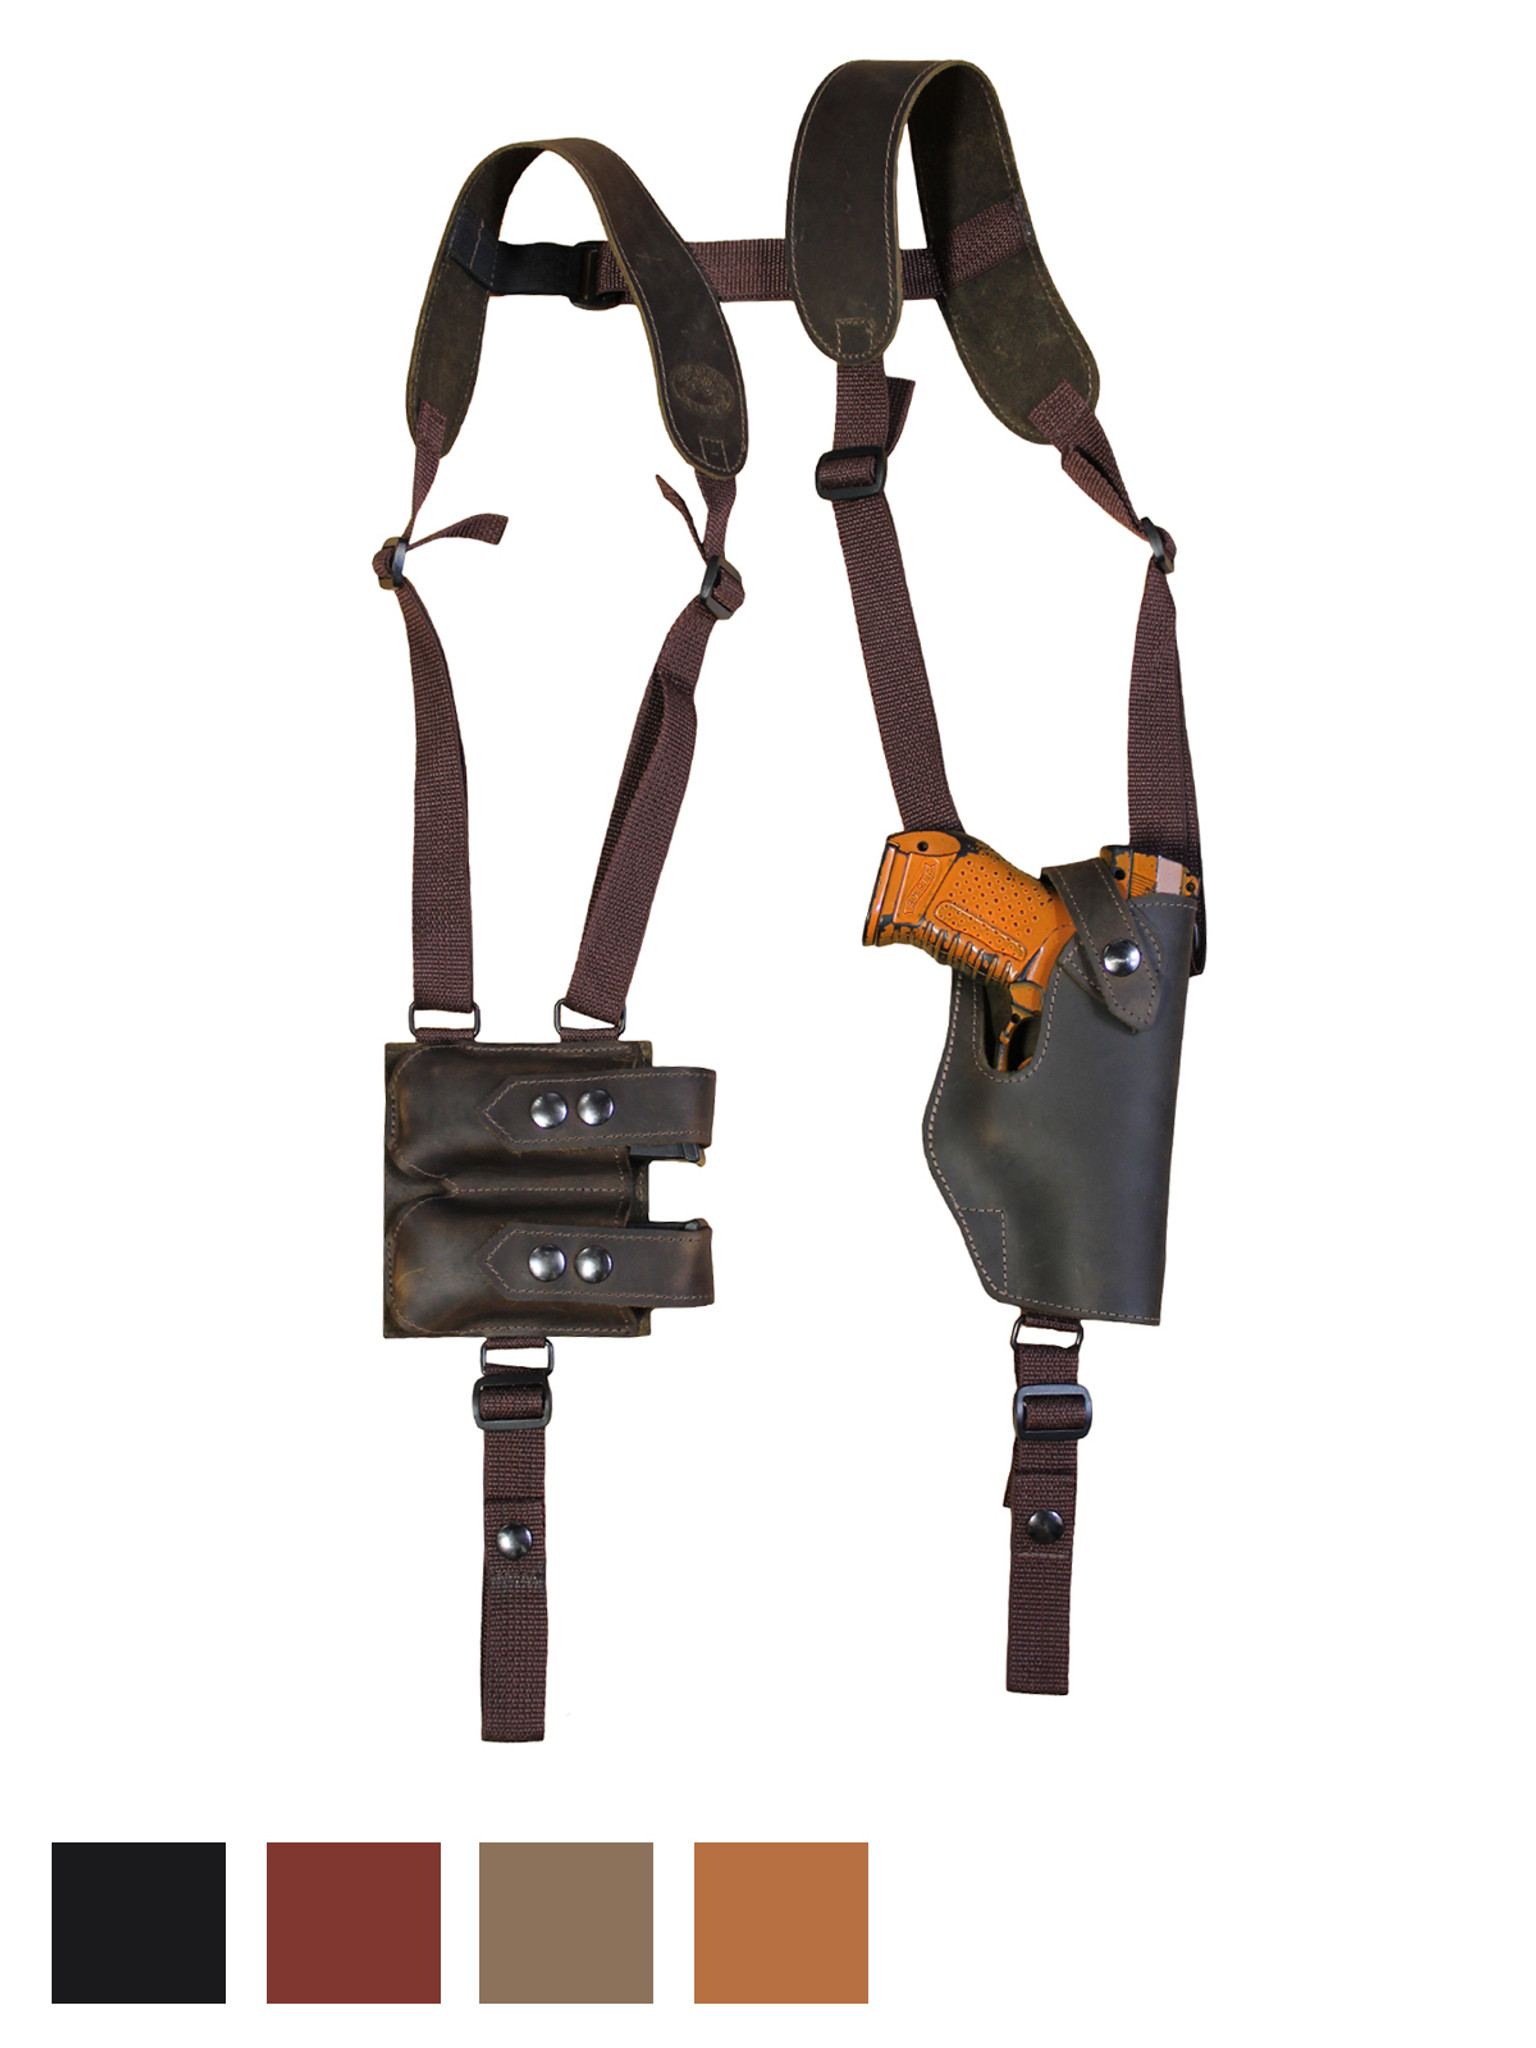 NEW Barsony Olive Drab Shoulder Holster Dbl Magazine Pouch CZ EAA Full Size VER